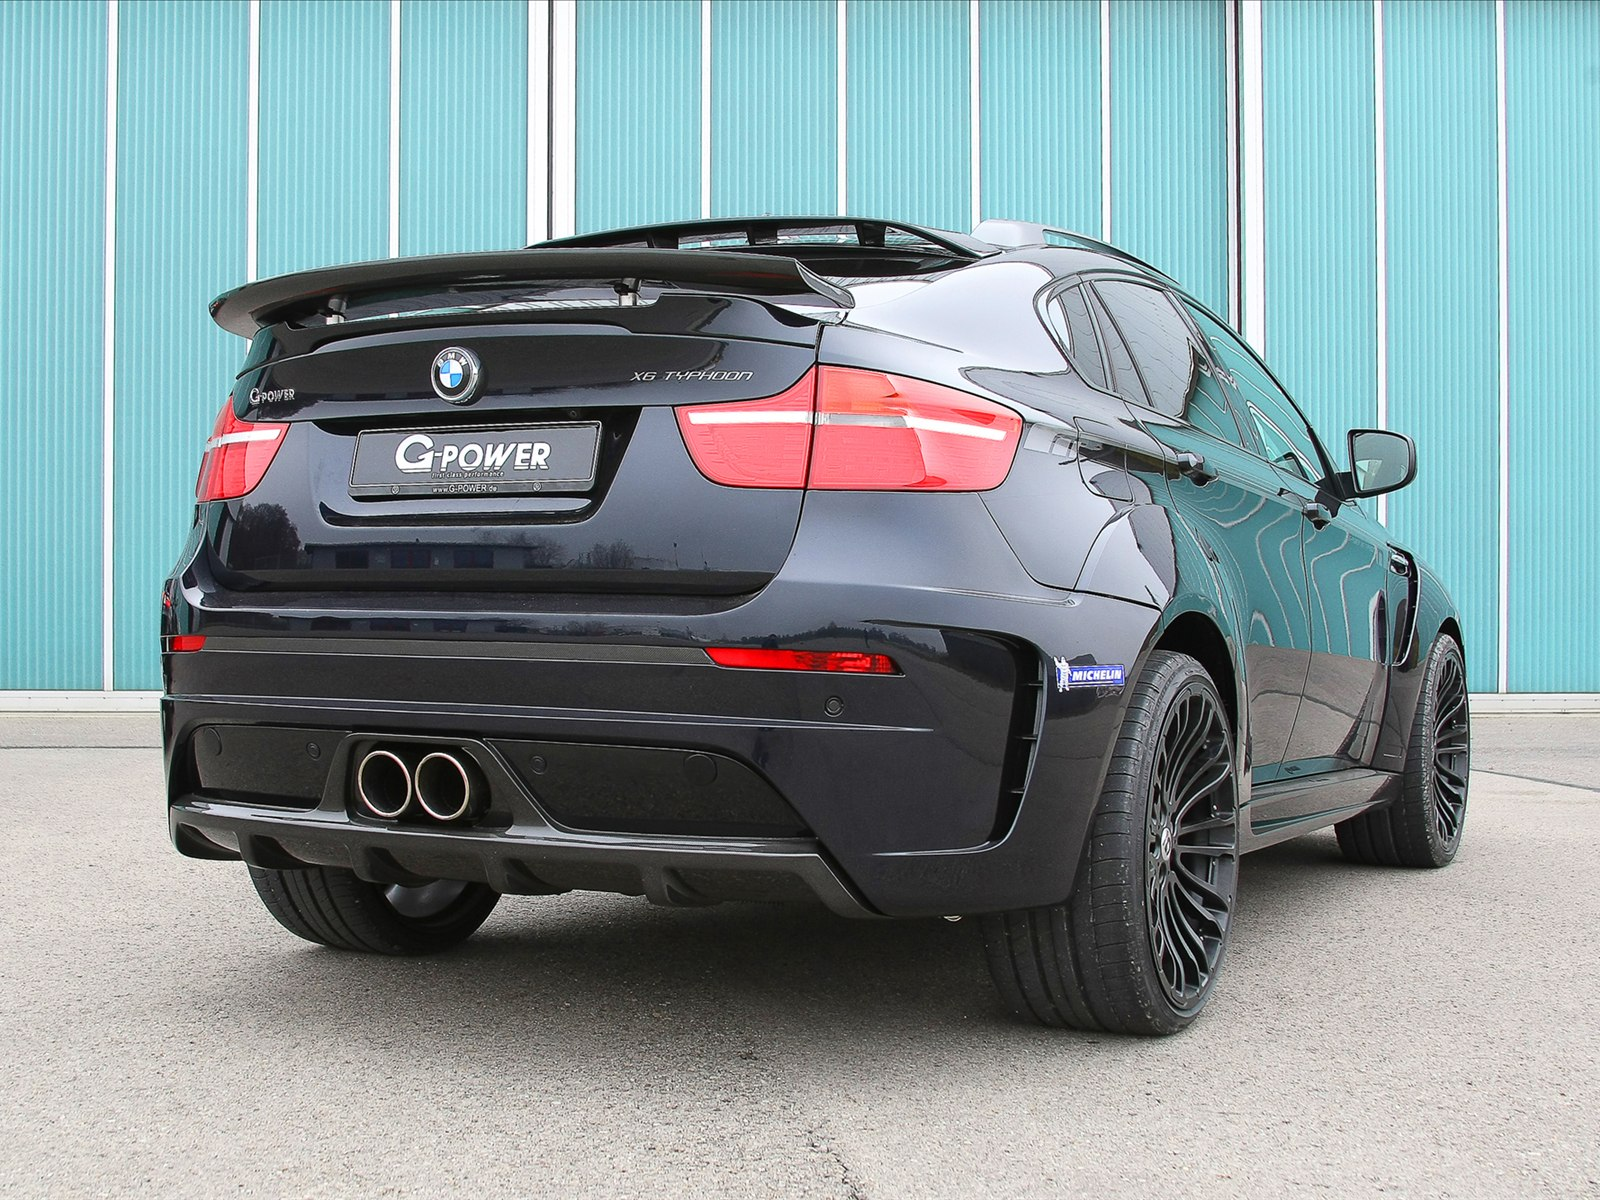 The G POWER X6 M TYPHOON Wide Body Kit Is Produced In OEM Quality And Features Muscular Flared Wheel Arches Plus Distinctive Skirts Spoilers On